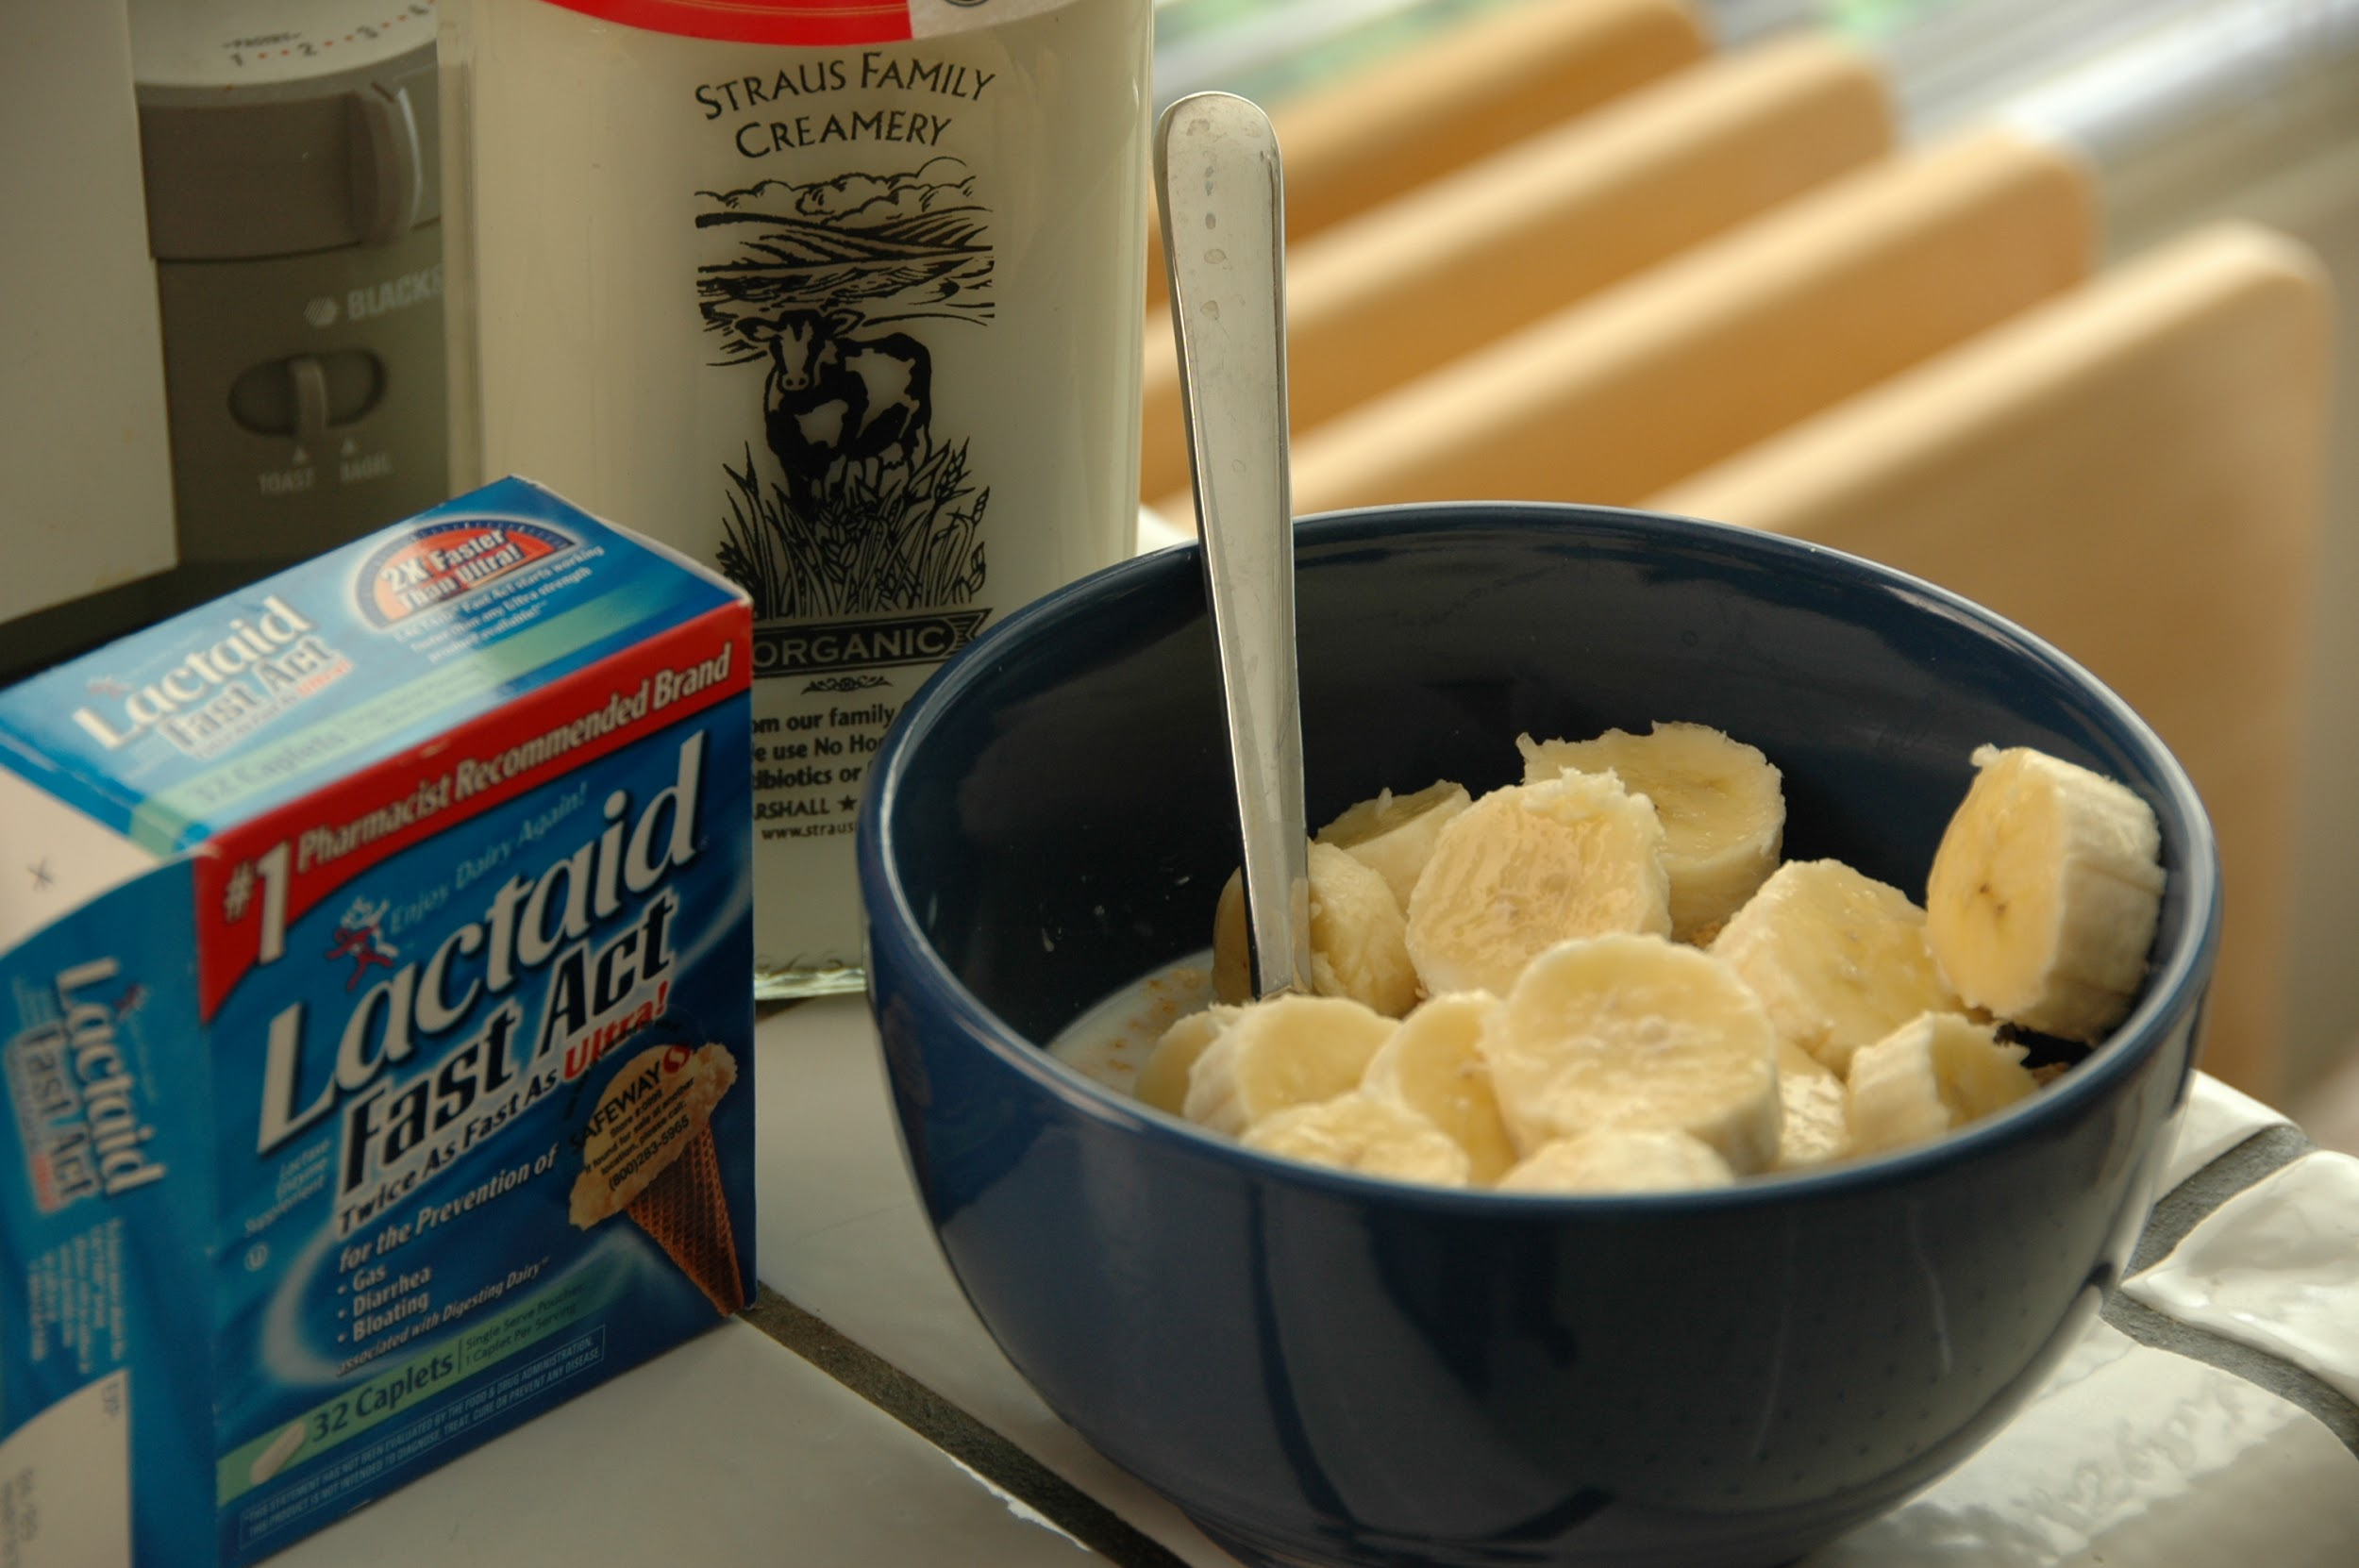 "A photograph depicts a blue bowl of cereal, topped with sliced bananas. Behind it is a glass bottle of milk, and to the left is a box labeled ""Lactaid: Fast Act."""